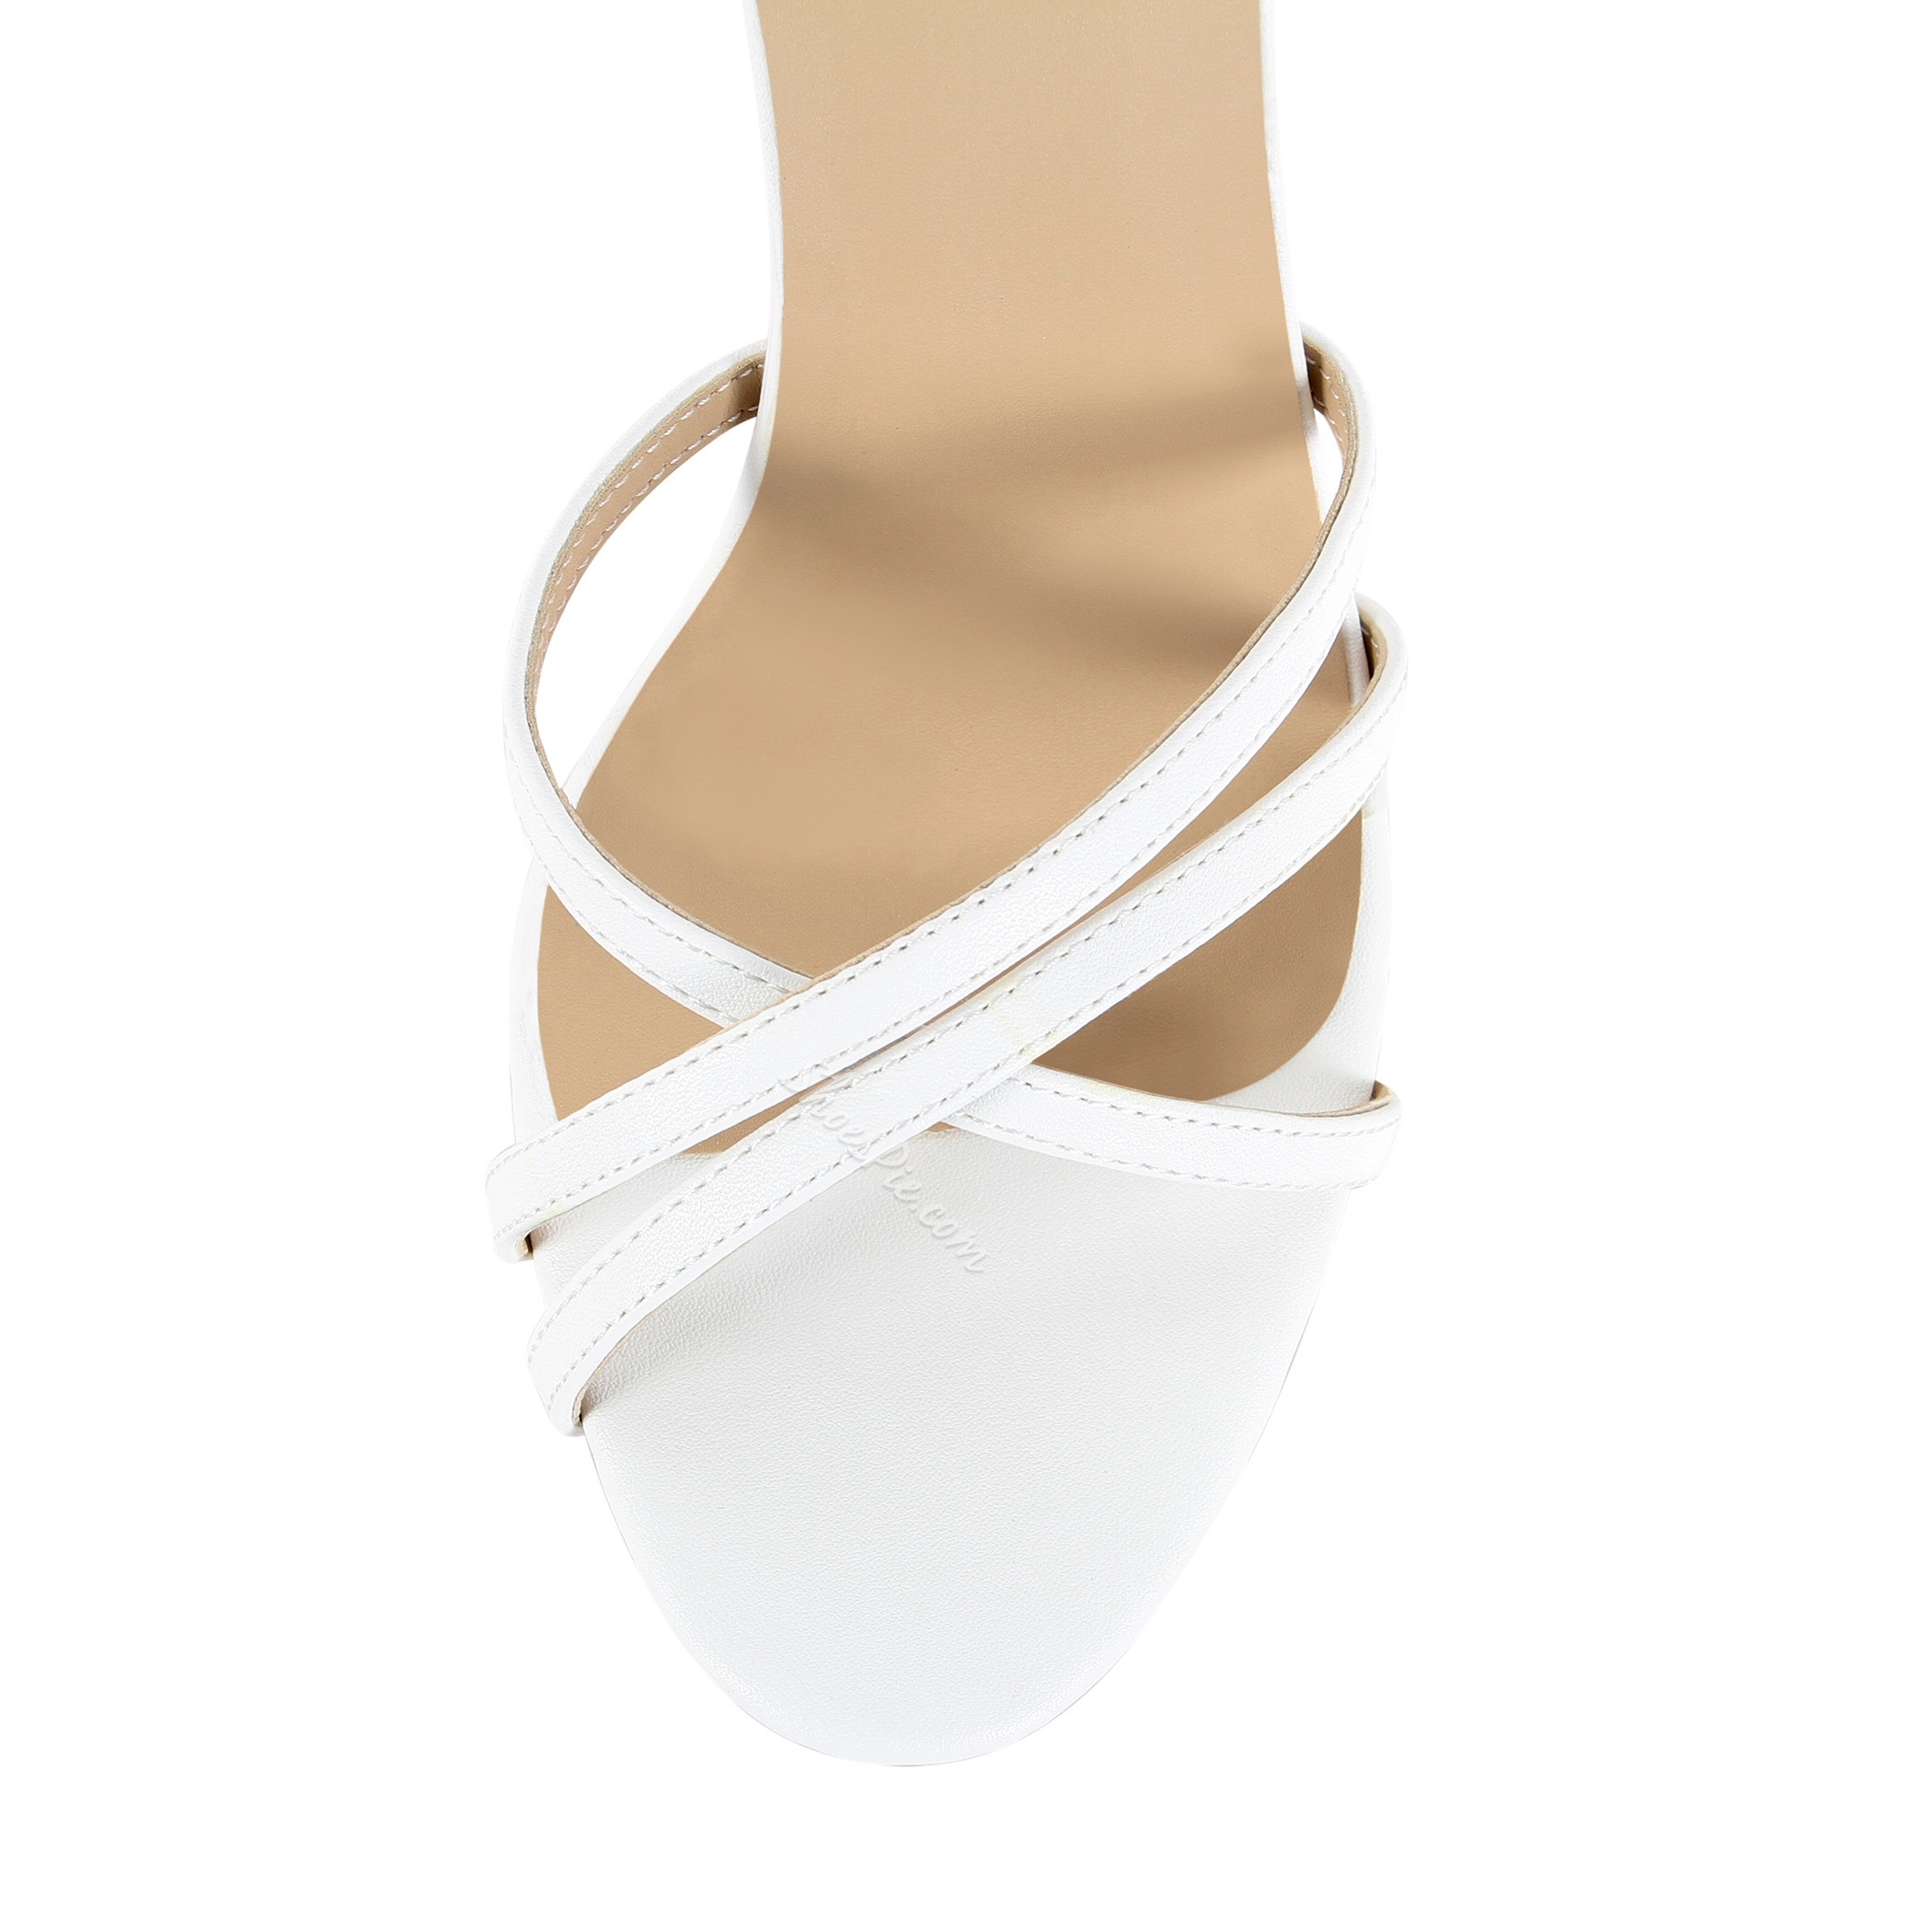 New Arrival White Coppy Leather Cut-Outs Ankle Strap High Heel Sandals